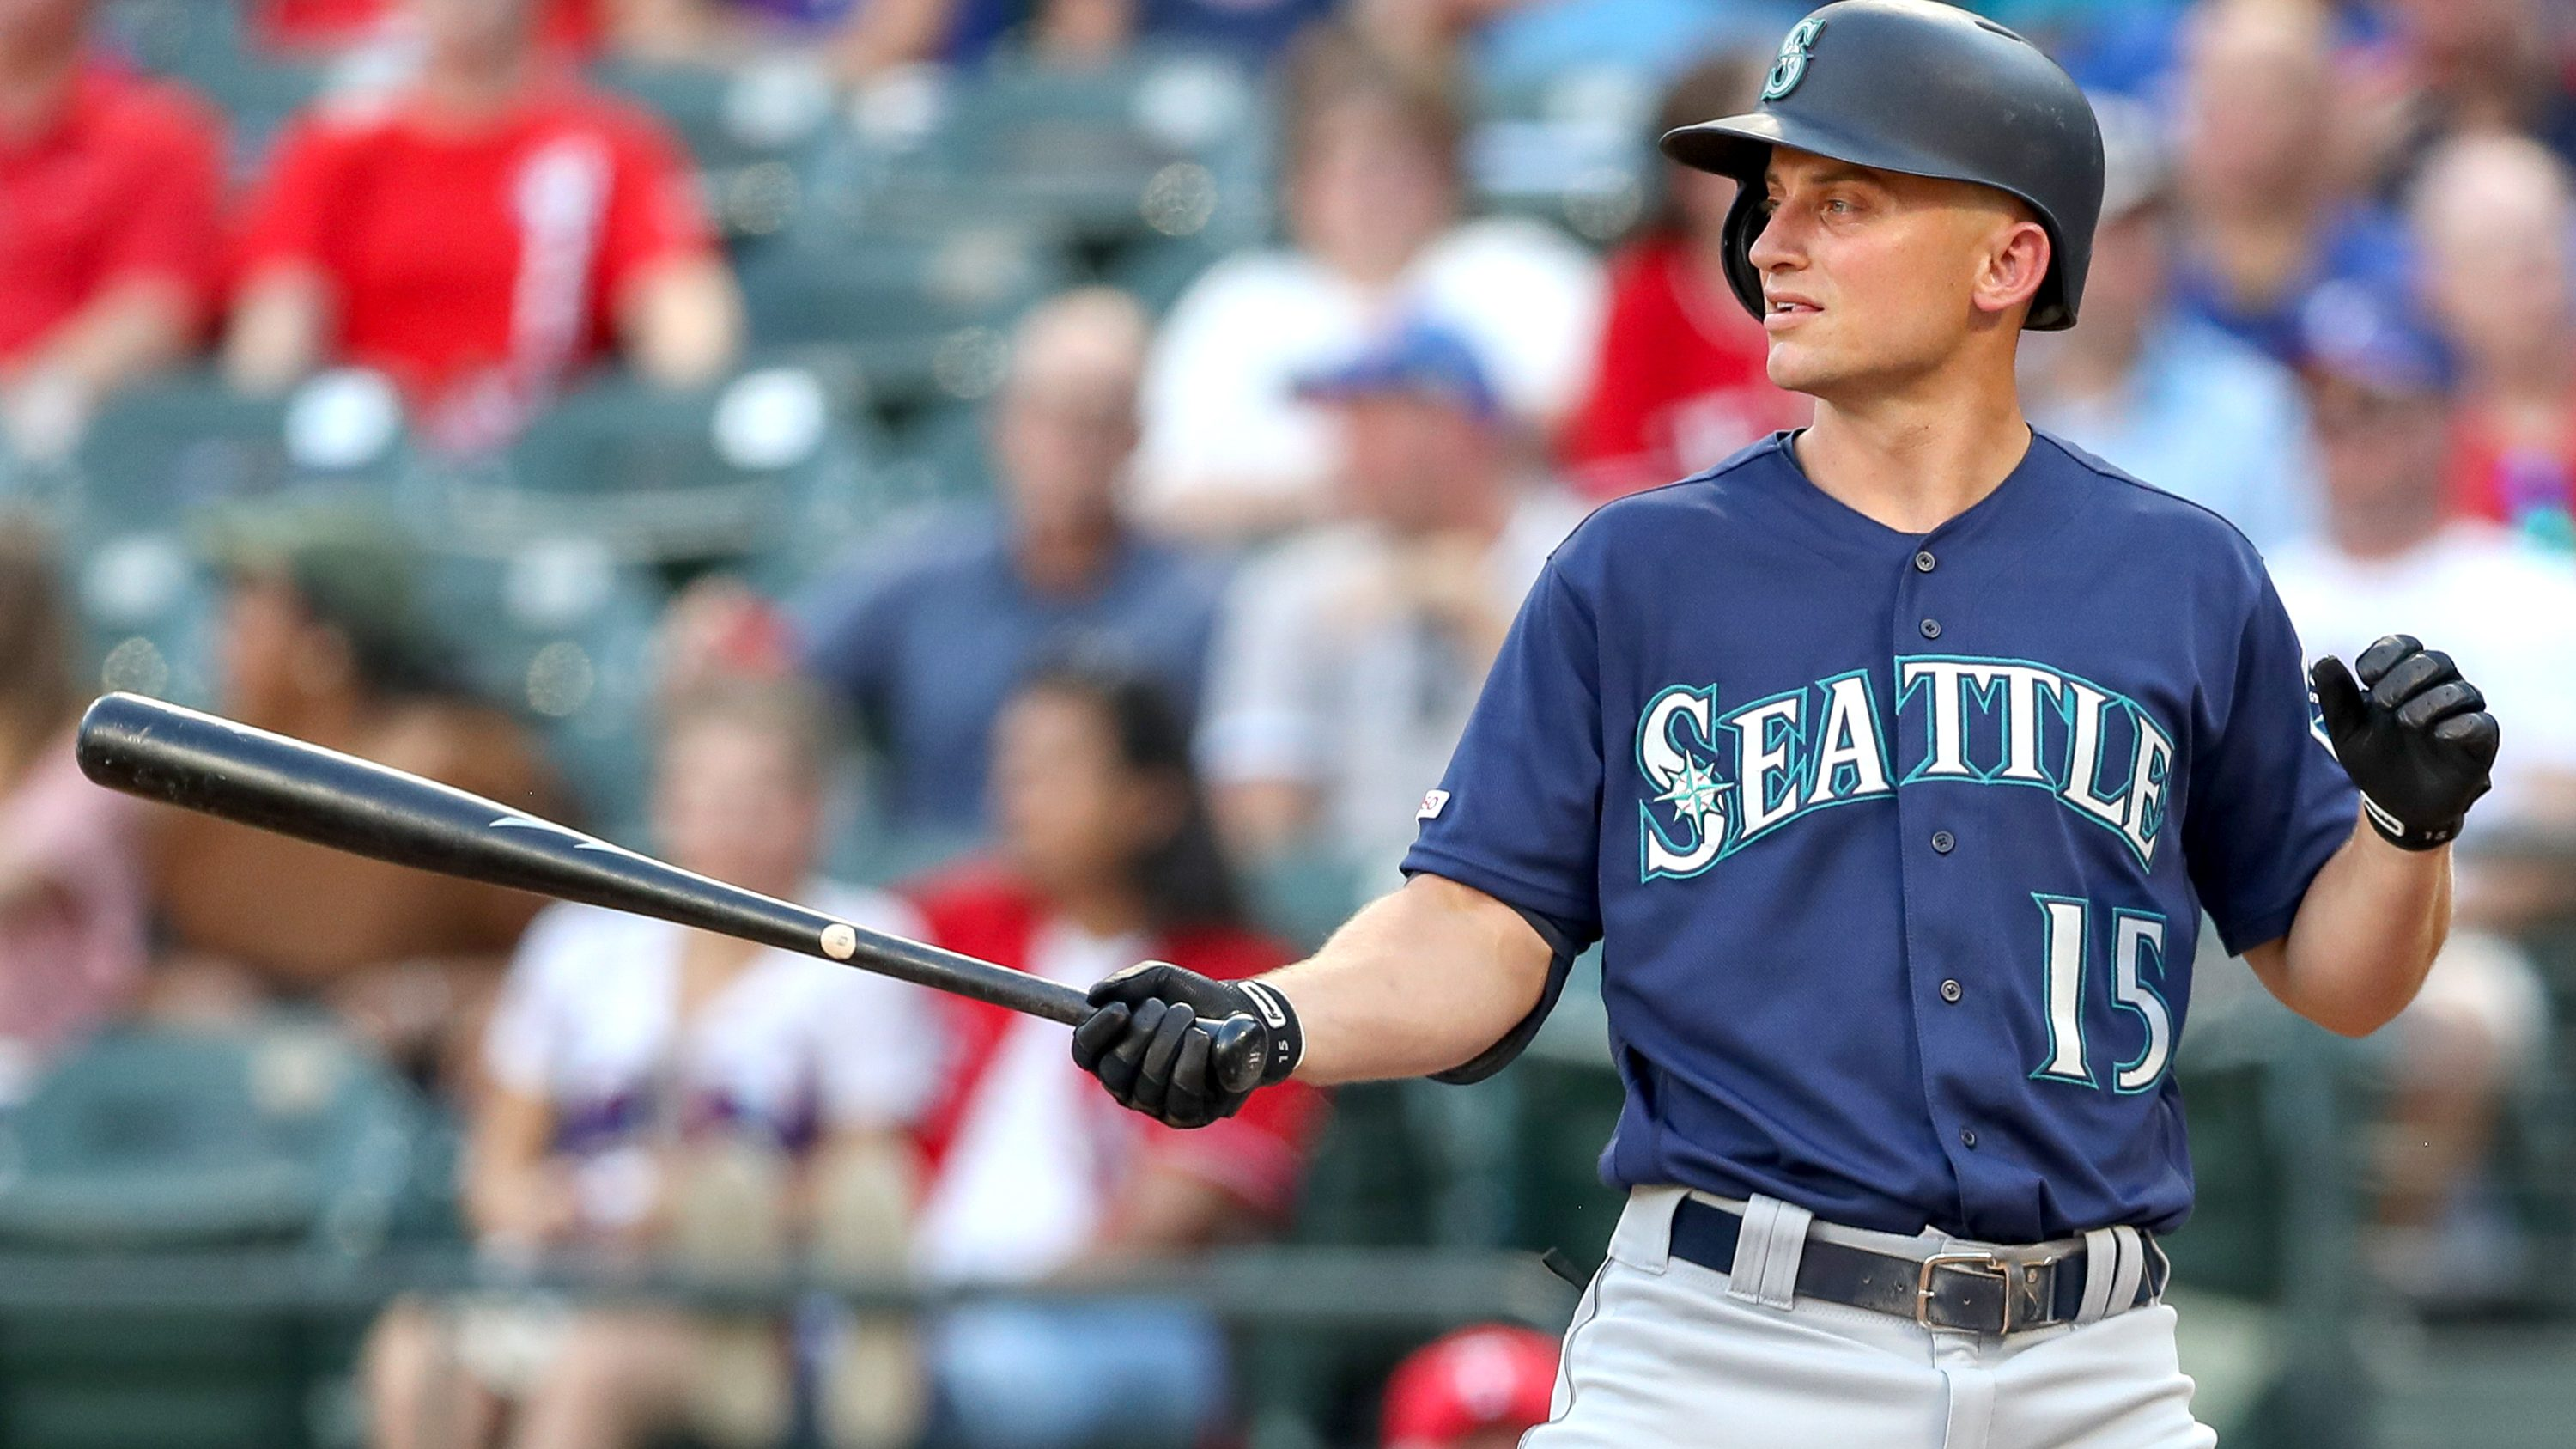 With some help, Kyle Seager belts three homers against Tigers ...